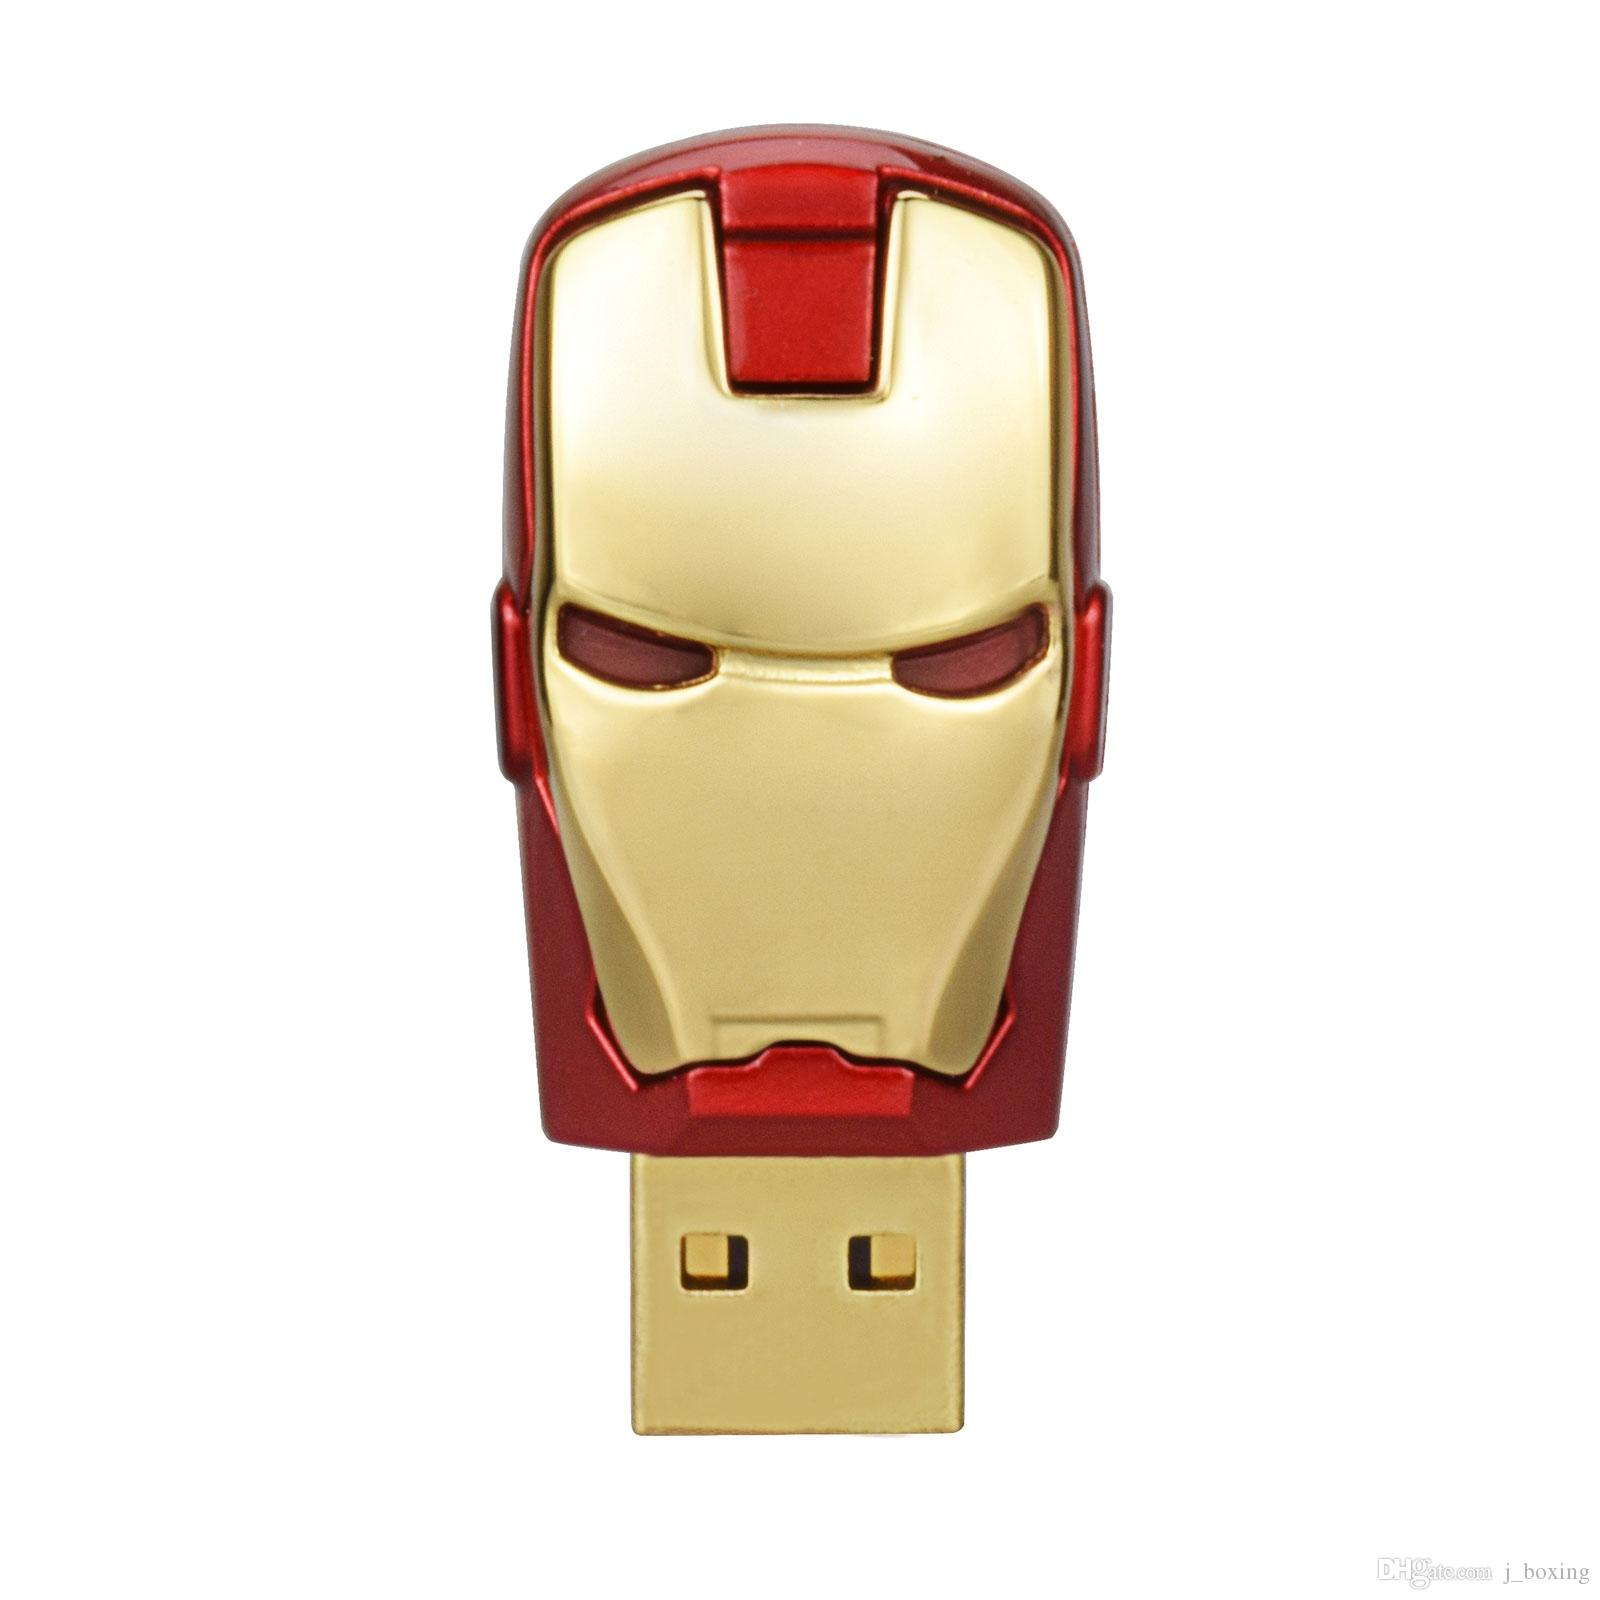 Free Shipping 10PCS/LOT 64MB LED Iron Man USB Flash Drives Thumb Pen Drives Storage for PC Laptop Tablet 64mb USB 2.0 Memory Stick Gold